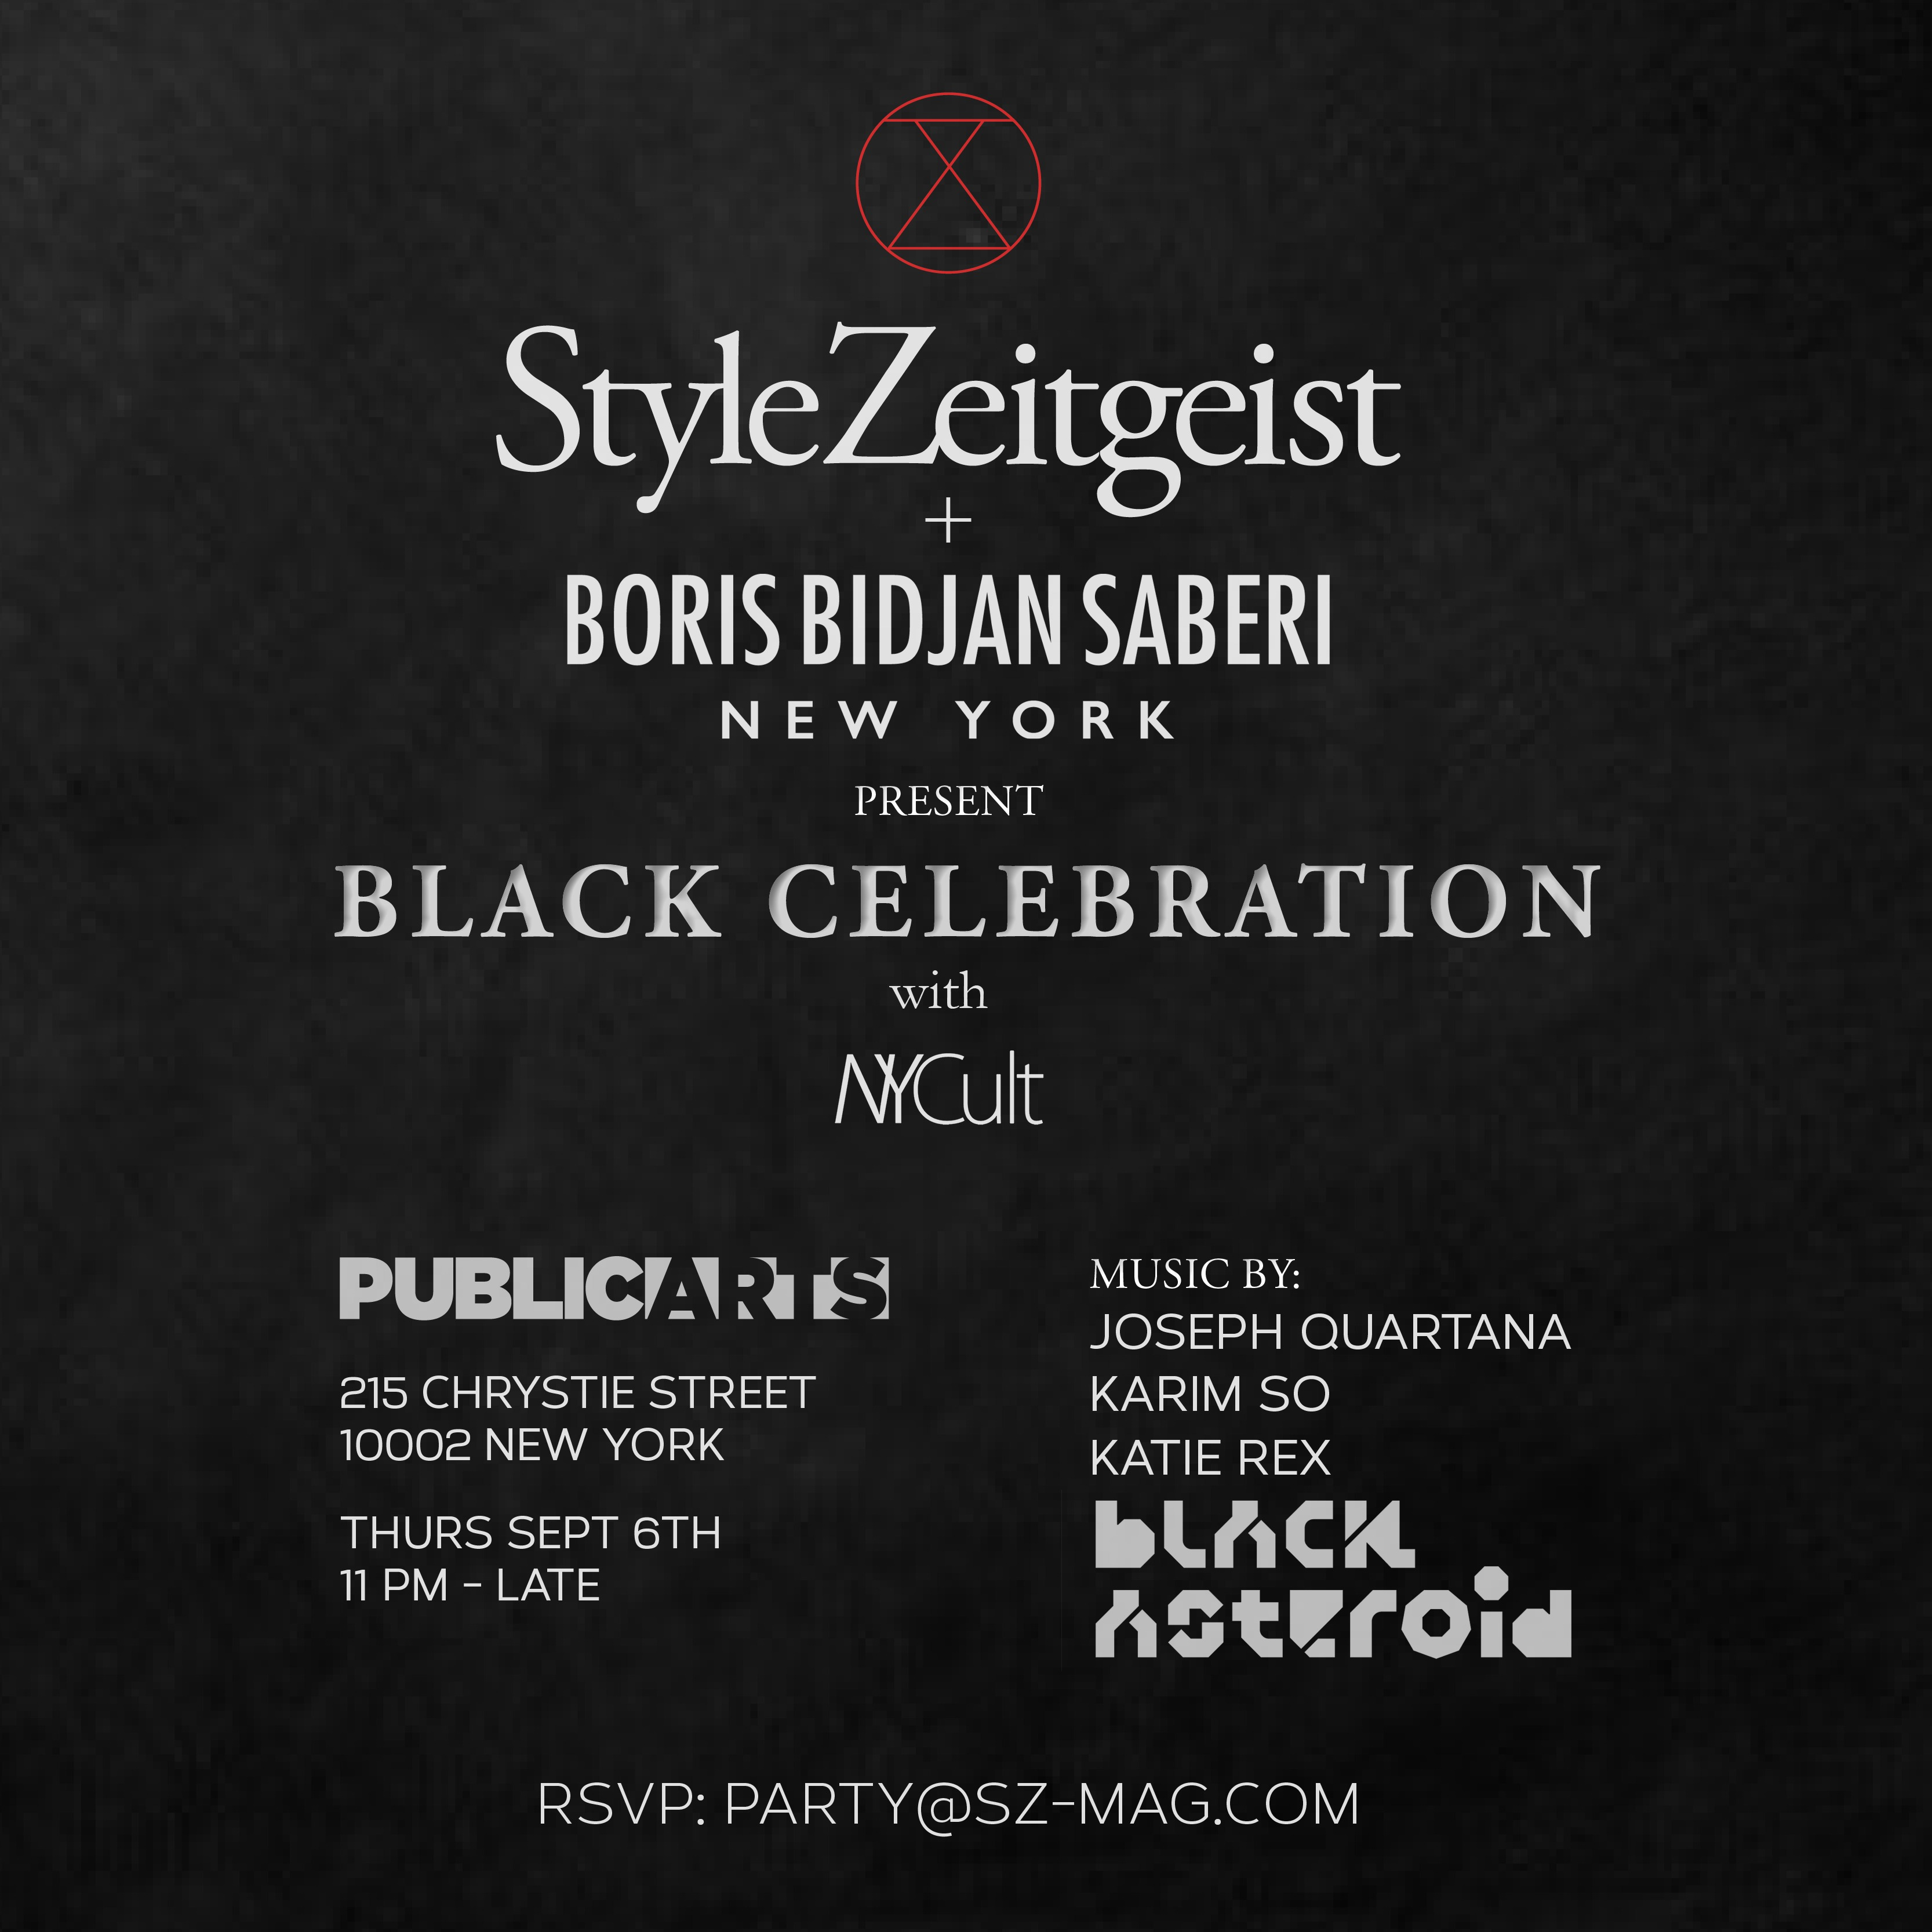 Black Celebration - events, culture - StyleZeitgeist, Public Arts, New York, Katie Rex, Joseph Quartana, Fashion, Boris Bidjan Saberi, Black Celebration, Black Asteroid, 2018